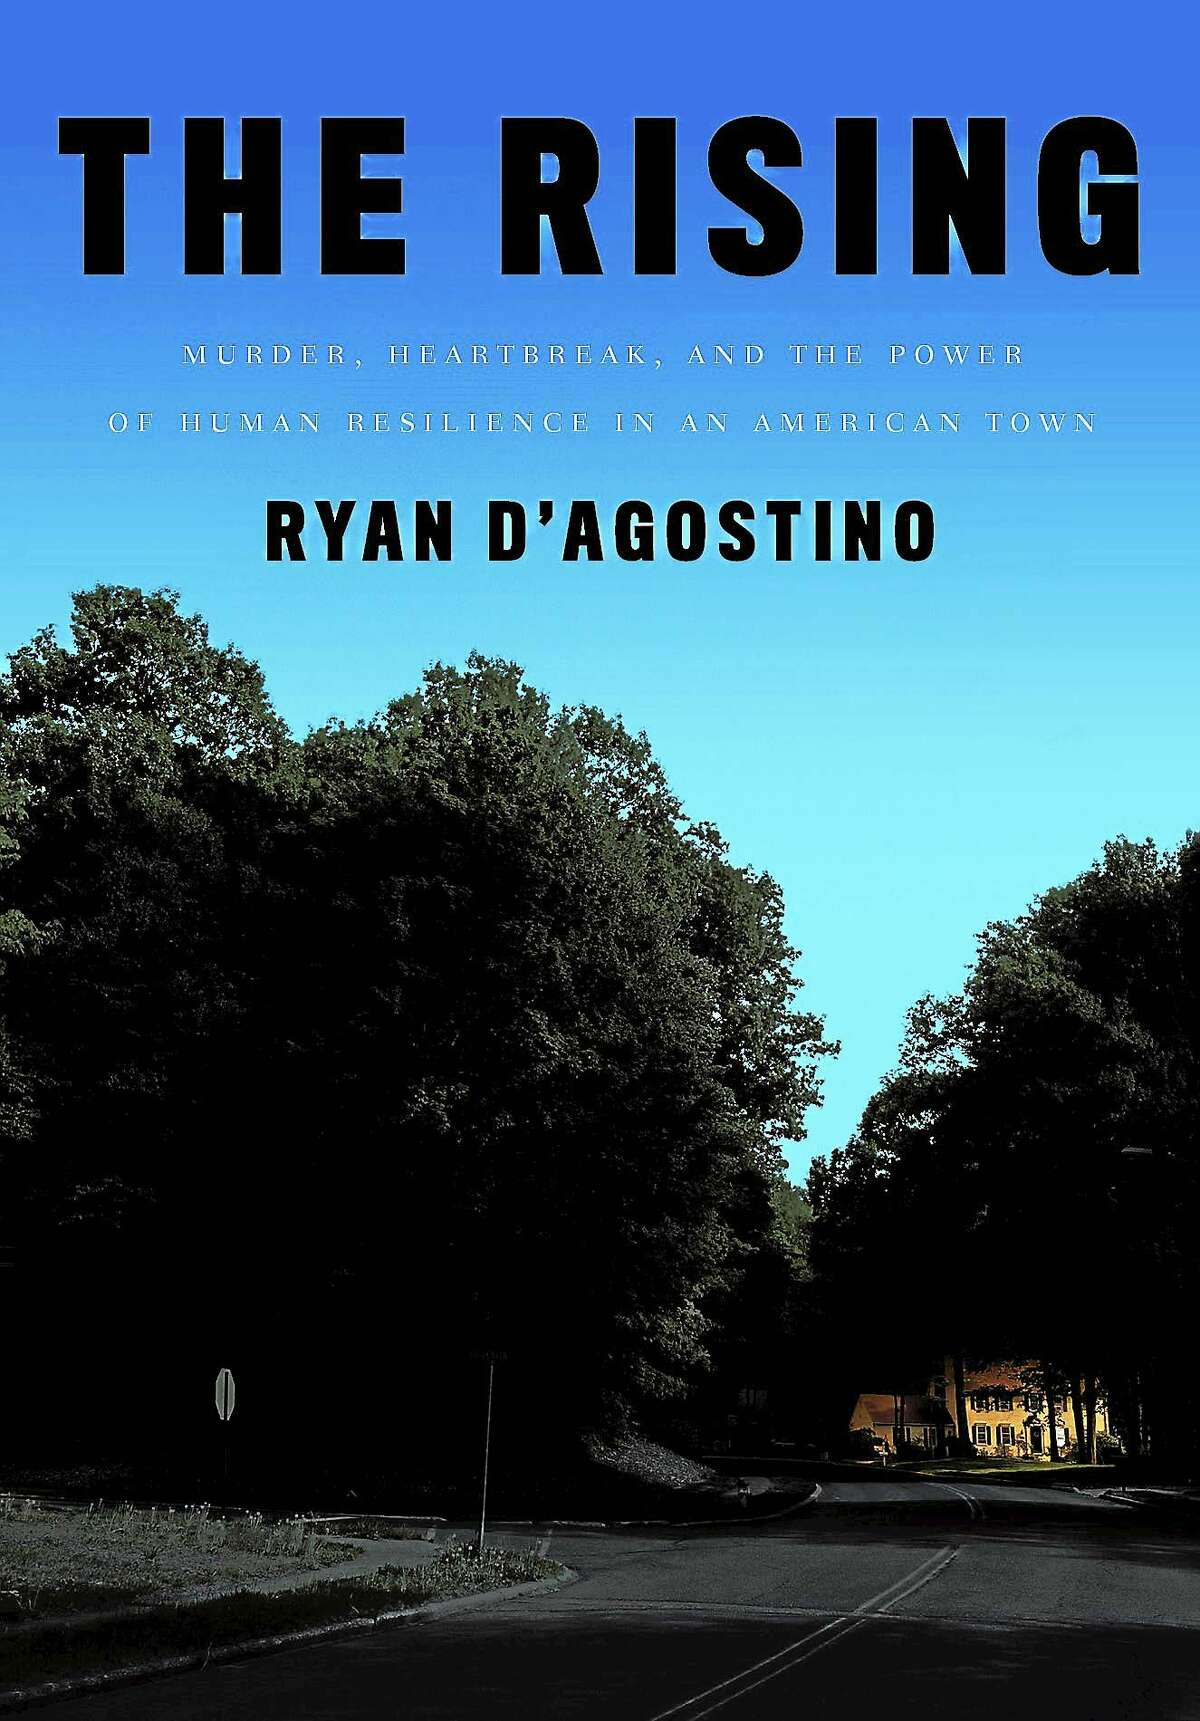 A new book by journalist Ryan D'Agostino on Dr. William Petit